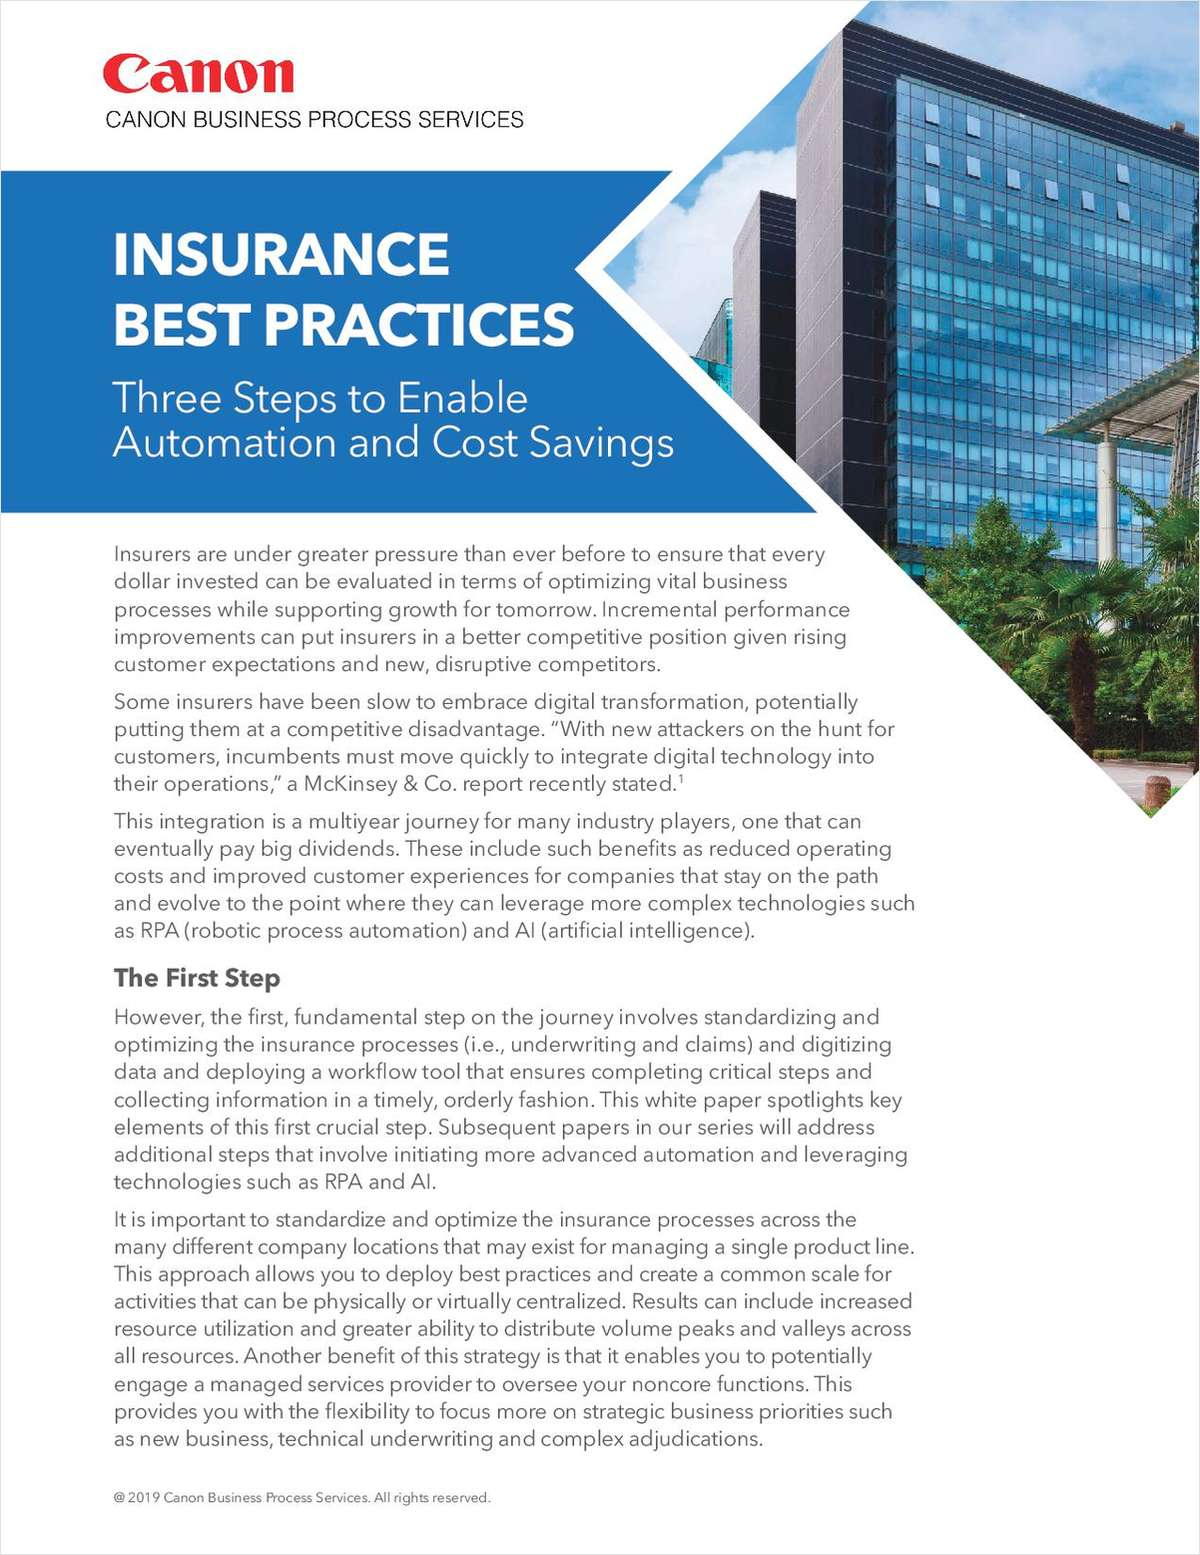 Insurance Best Practices: Three Steps to Enable Automation and Cost Savings